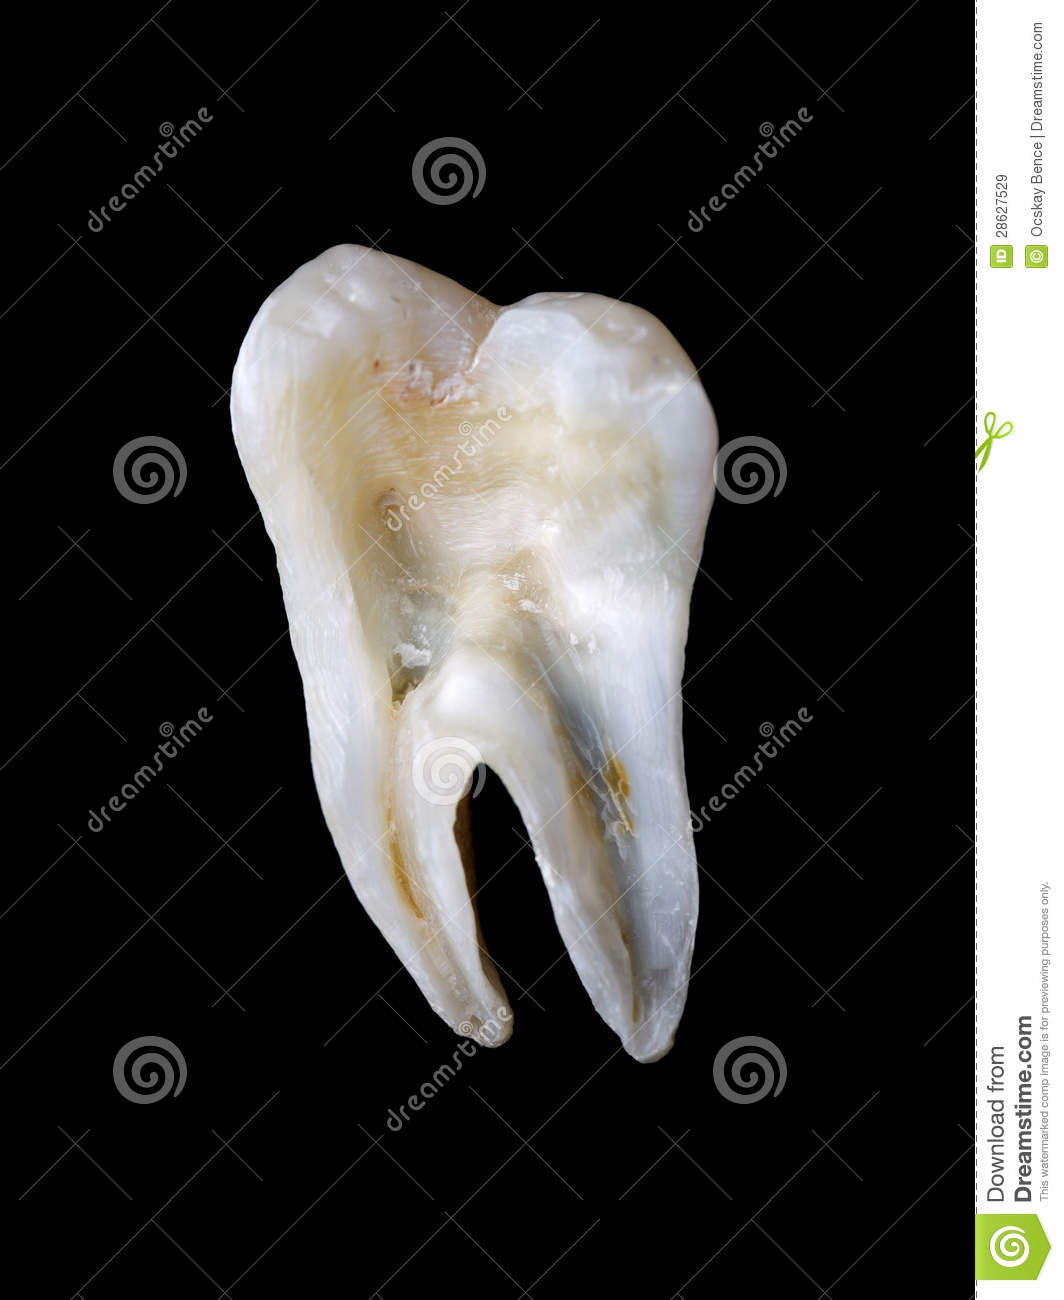 Longitudinal Section From A Human Tooth Stock Image Image Of